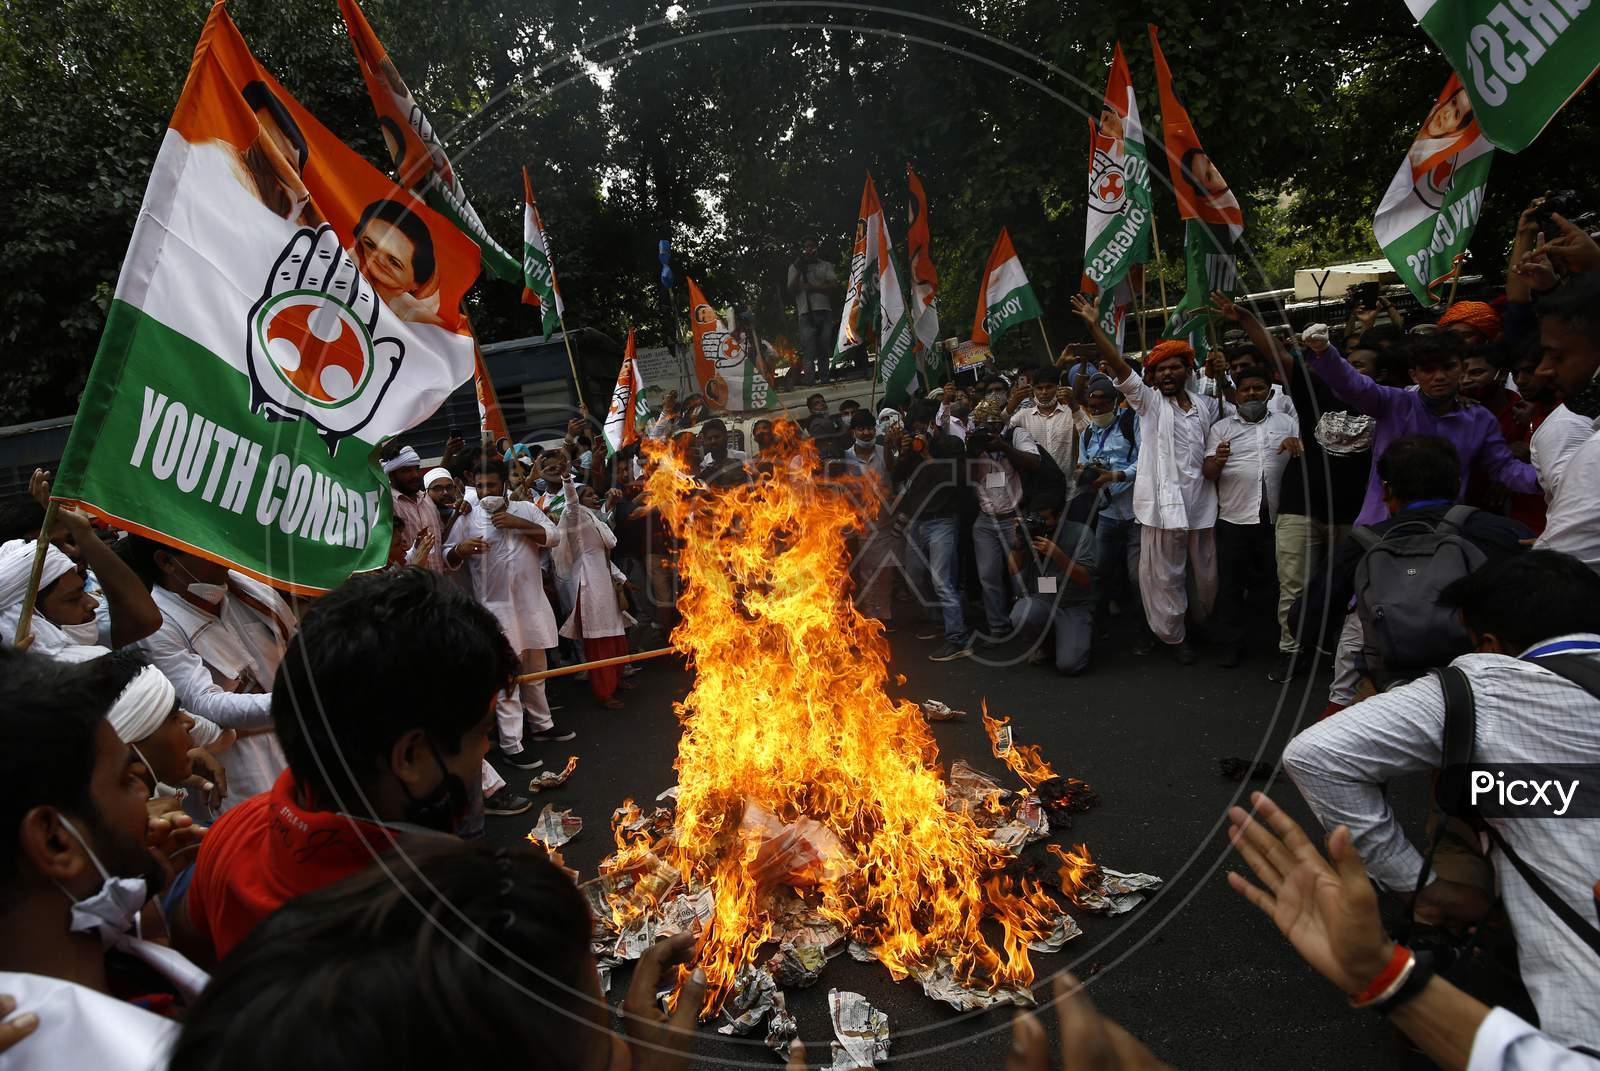 Member of India's opposition Congress party shout slogans during a protest against agriculture bills in New Delhi, India, Sept  22, 2020. Amid an uproar in Parliament, Indian lawmakers  approved a controversial agriculture bills that the government says will boost growth in  farming.